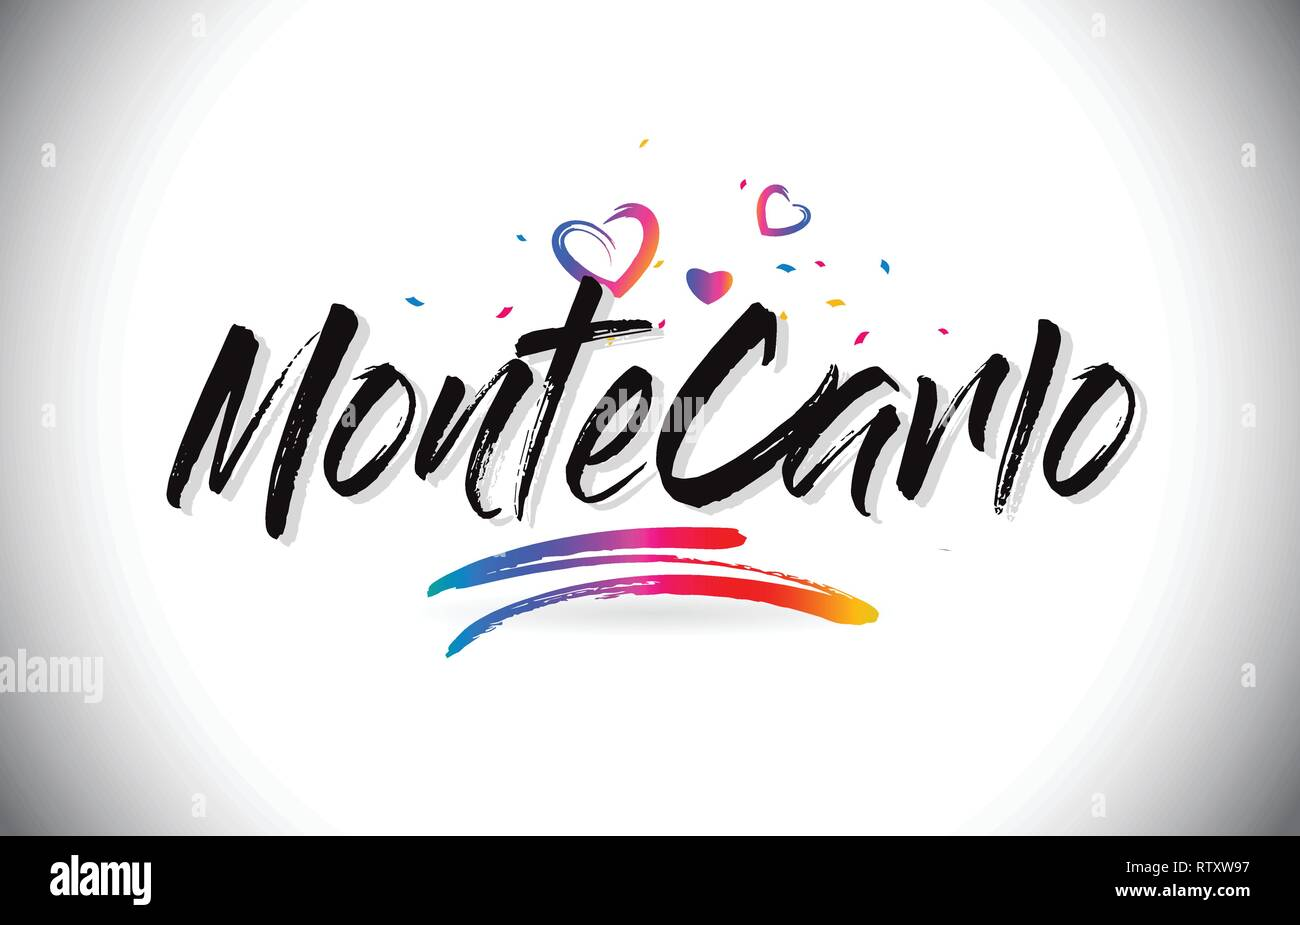 MonteCarlo Welcome To Word Text with Love Hearts and Creative Handwritten Font Design Vector Illustration. - Stock Vector